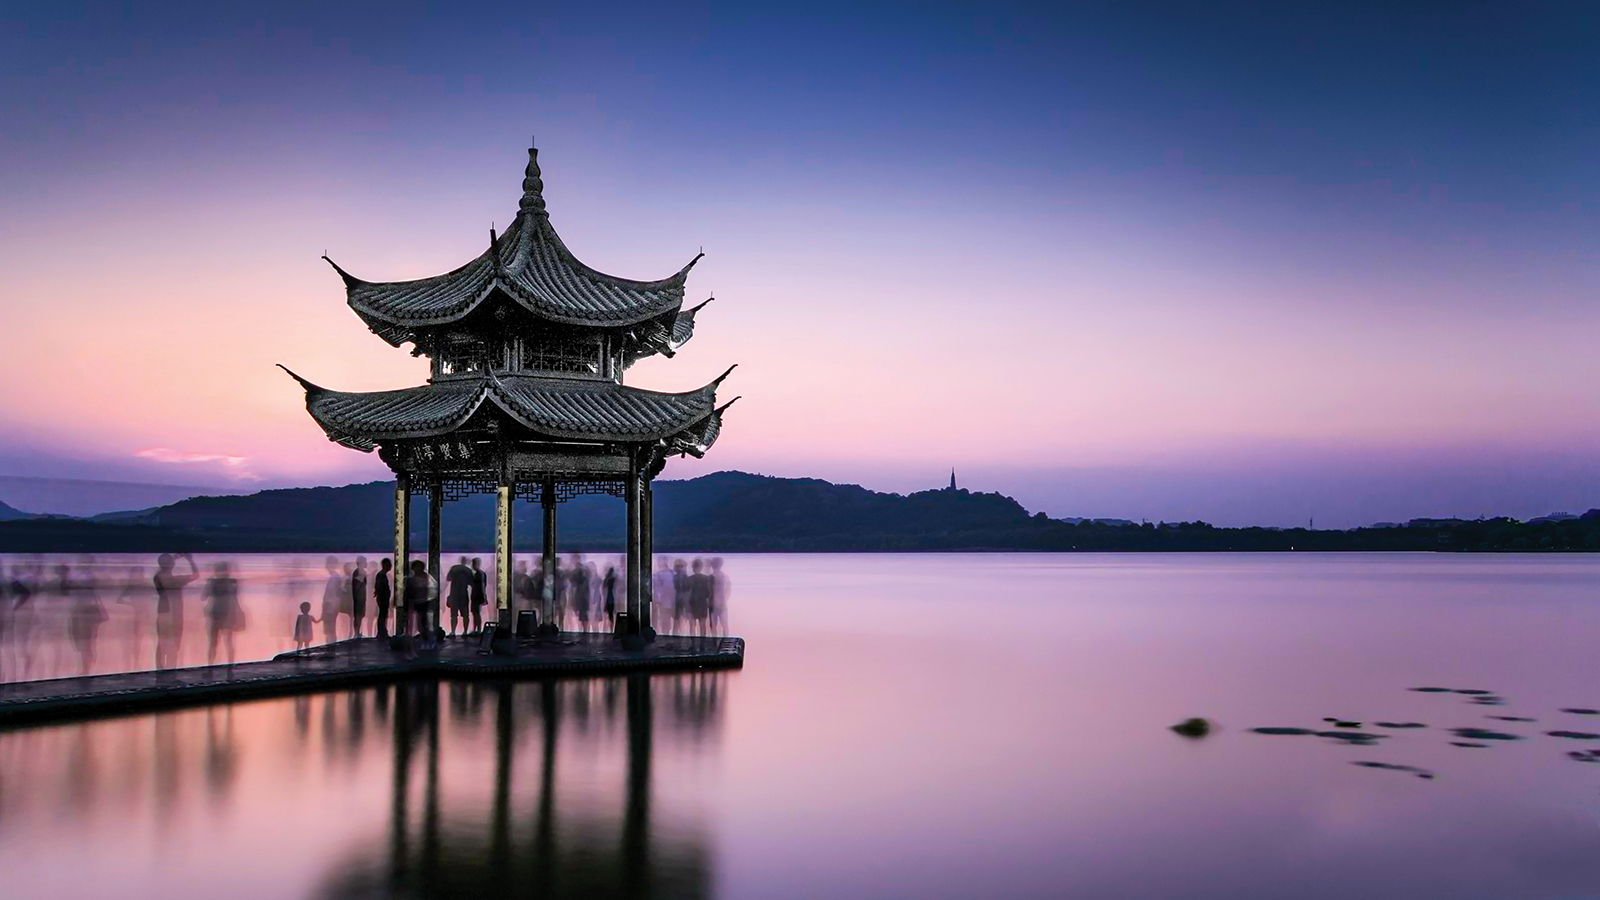 East Asian pagoda on the water at sunset